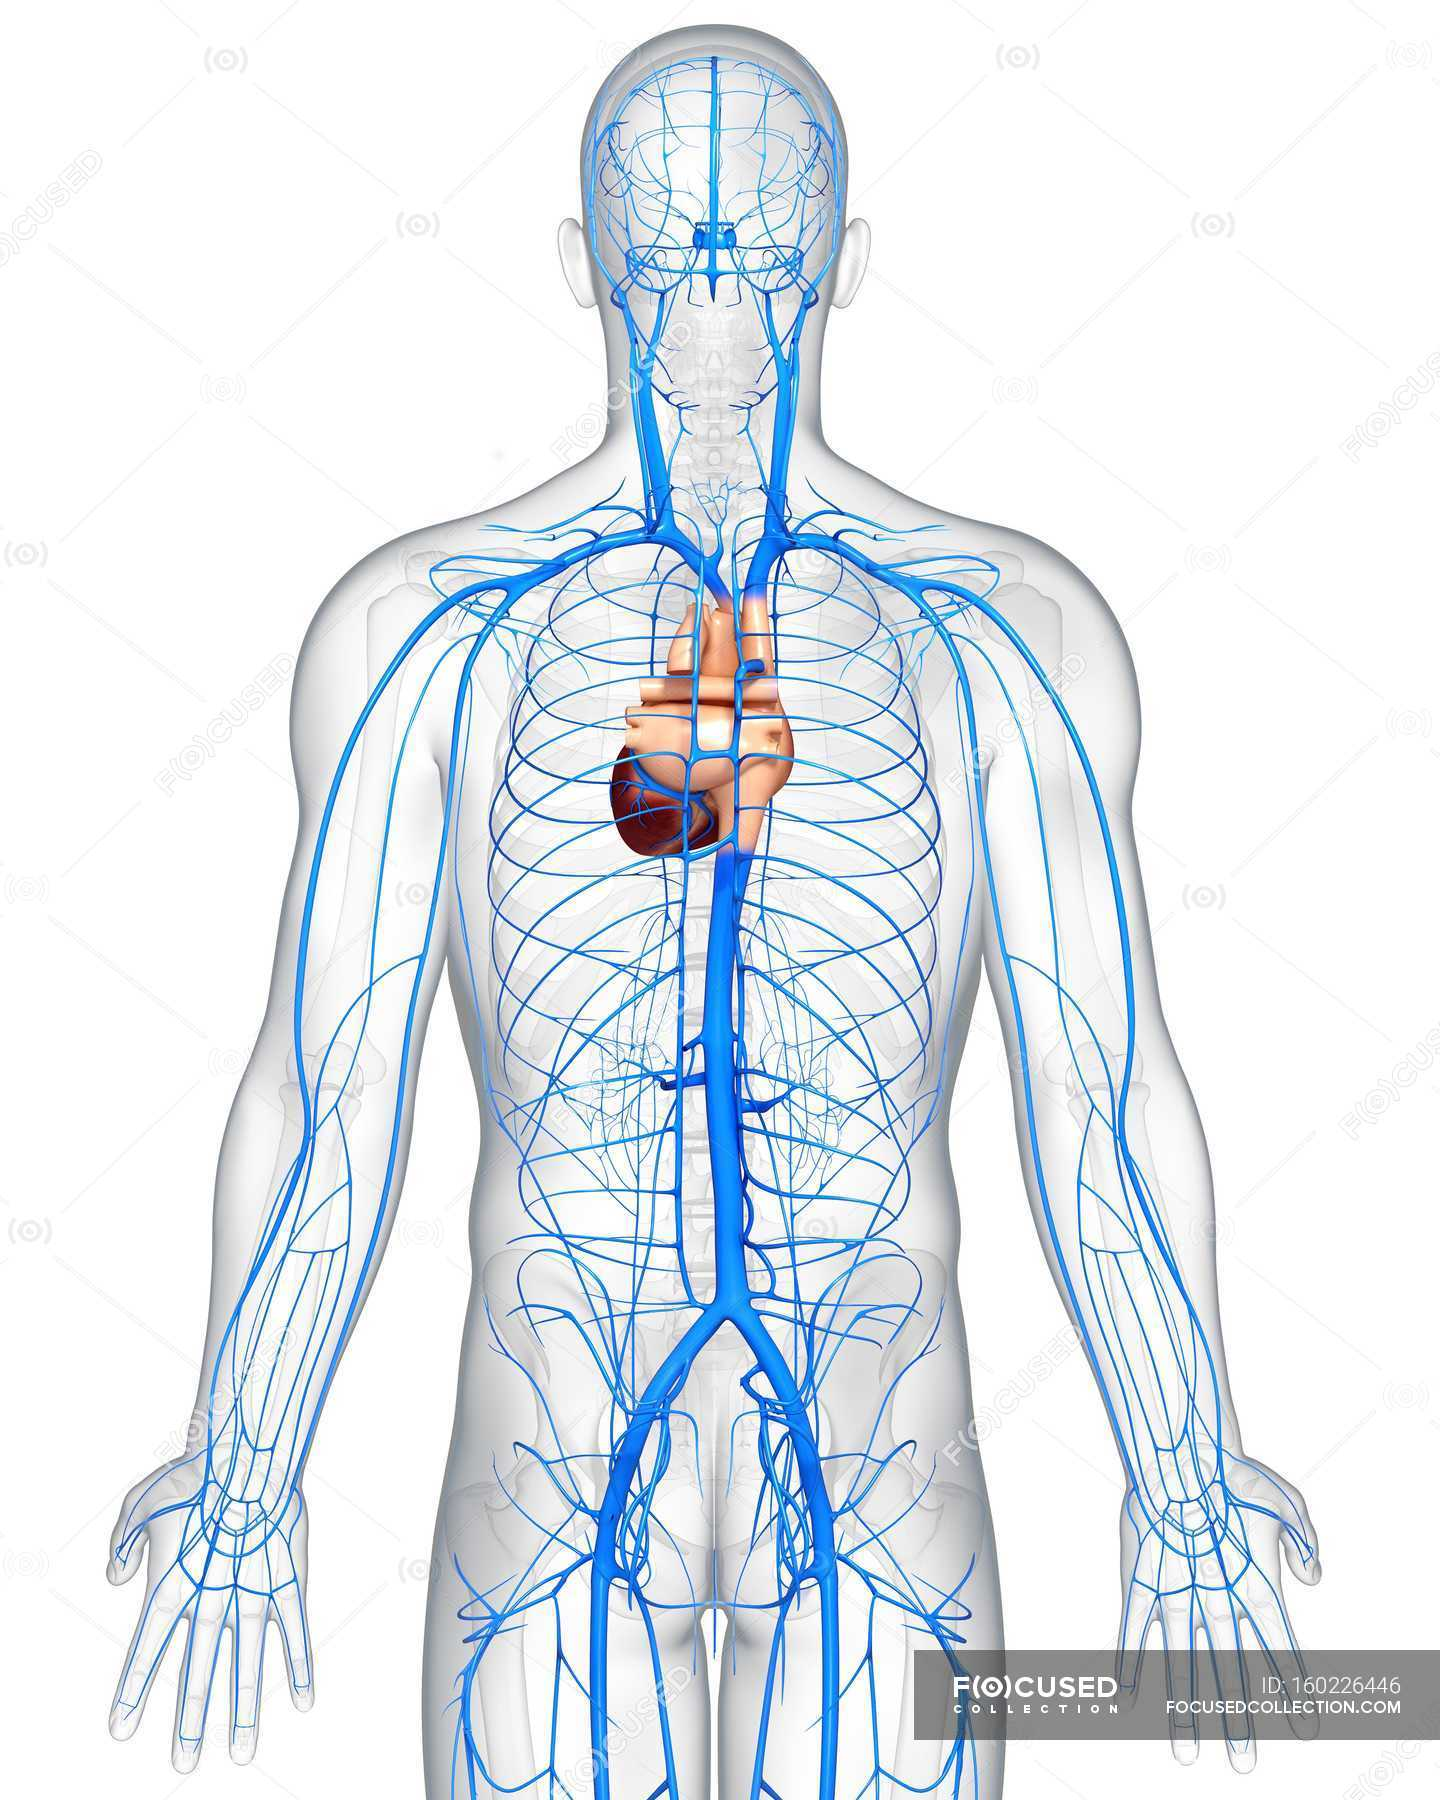 Human Veins Anatomy Stock Photo 160226446